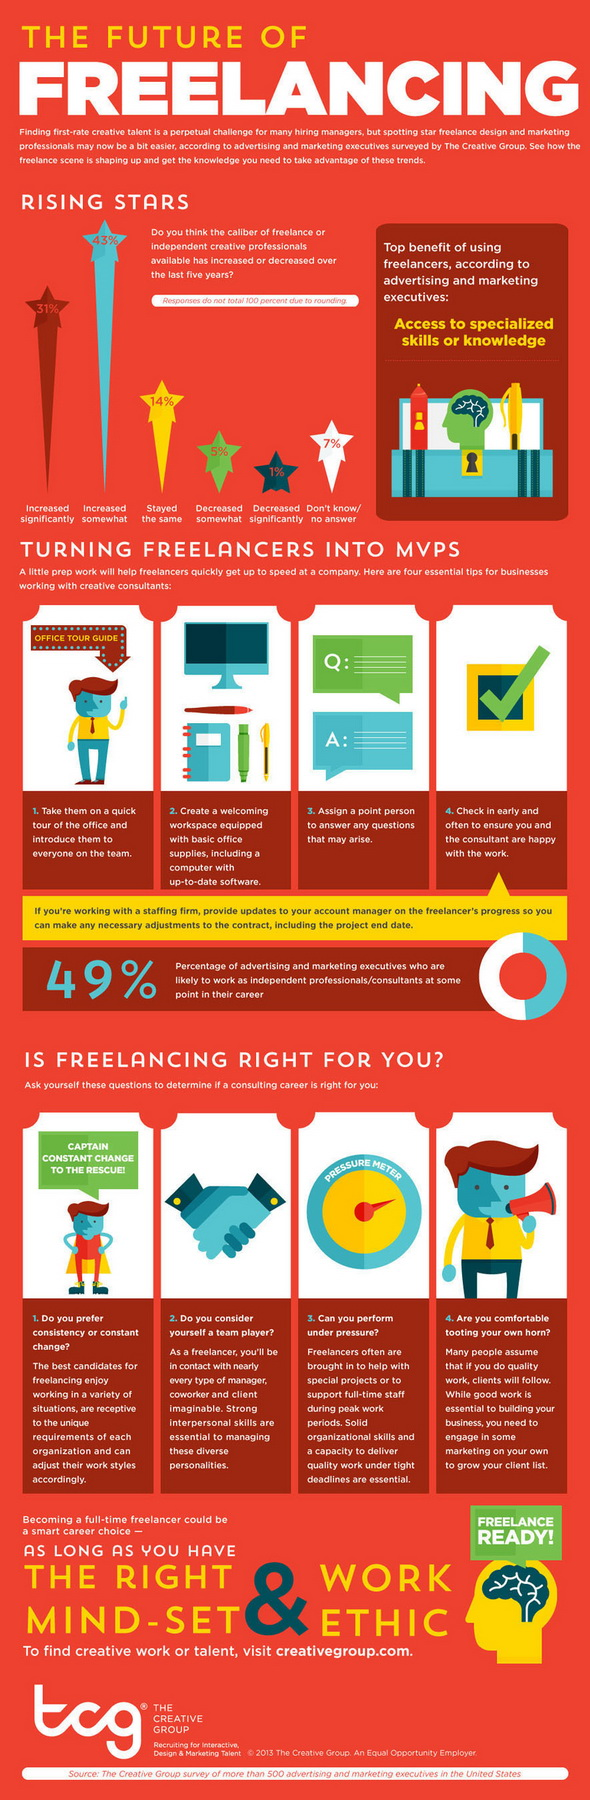 THE CREATIVE GROUP FREELANCING